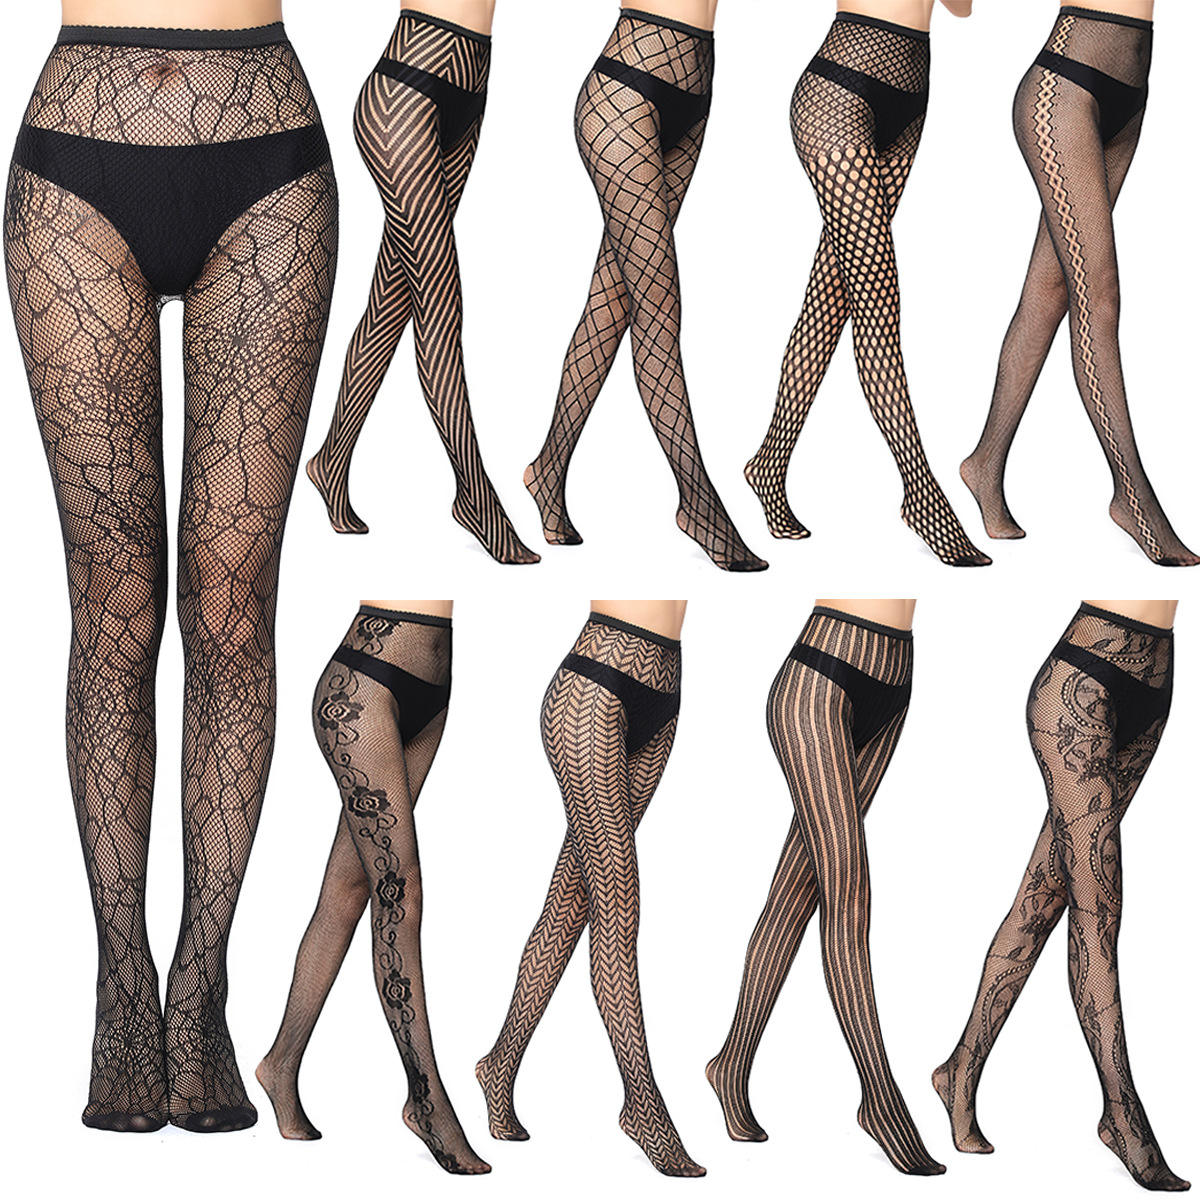 Summer Accessory Japan Beautiful Tights Gilr Sexy Jacquard Spider Stockings Women Fishnet Pantyhose